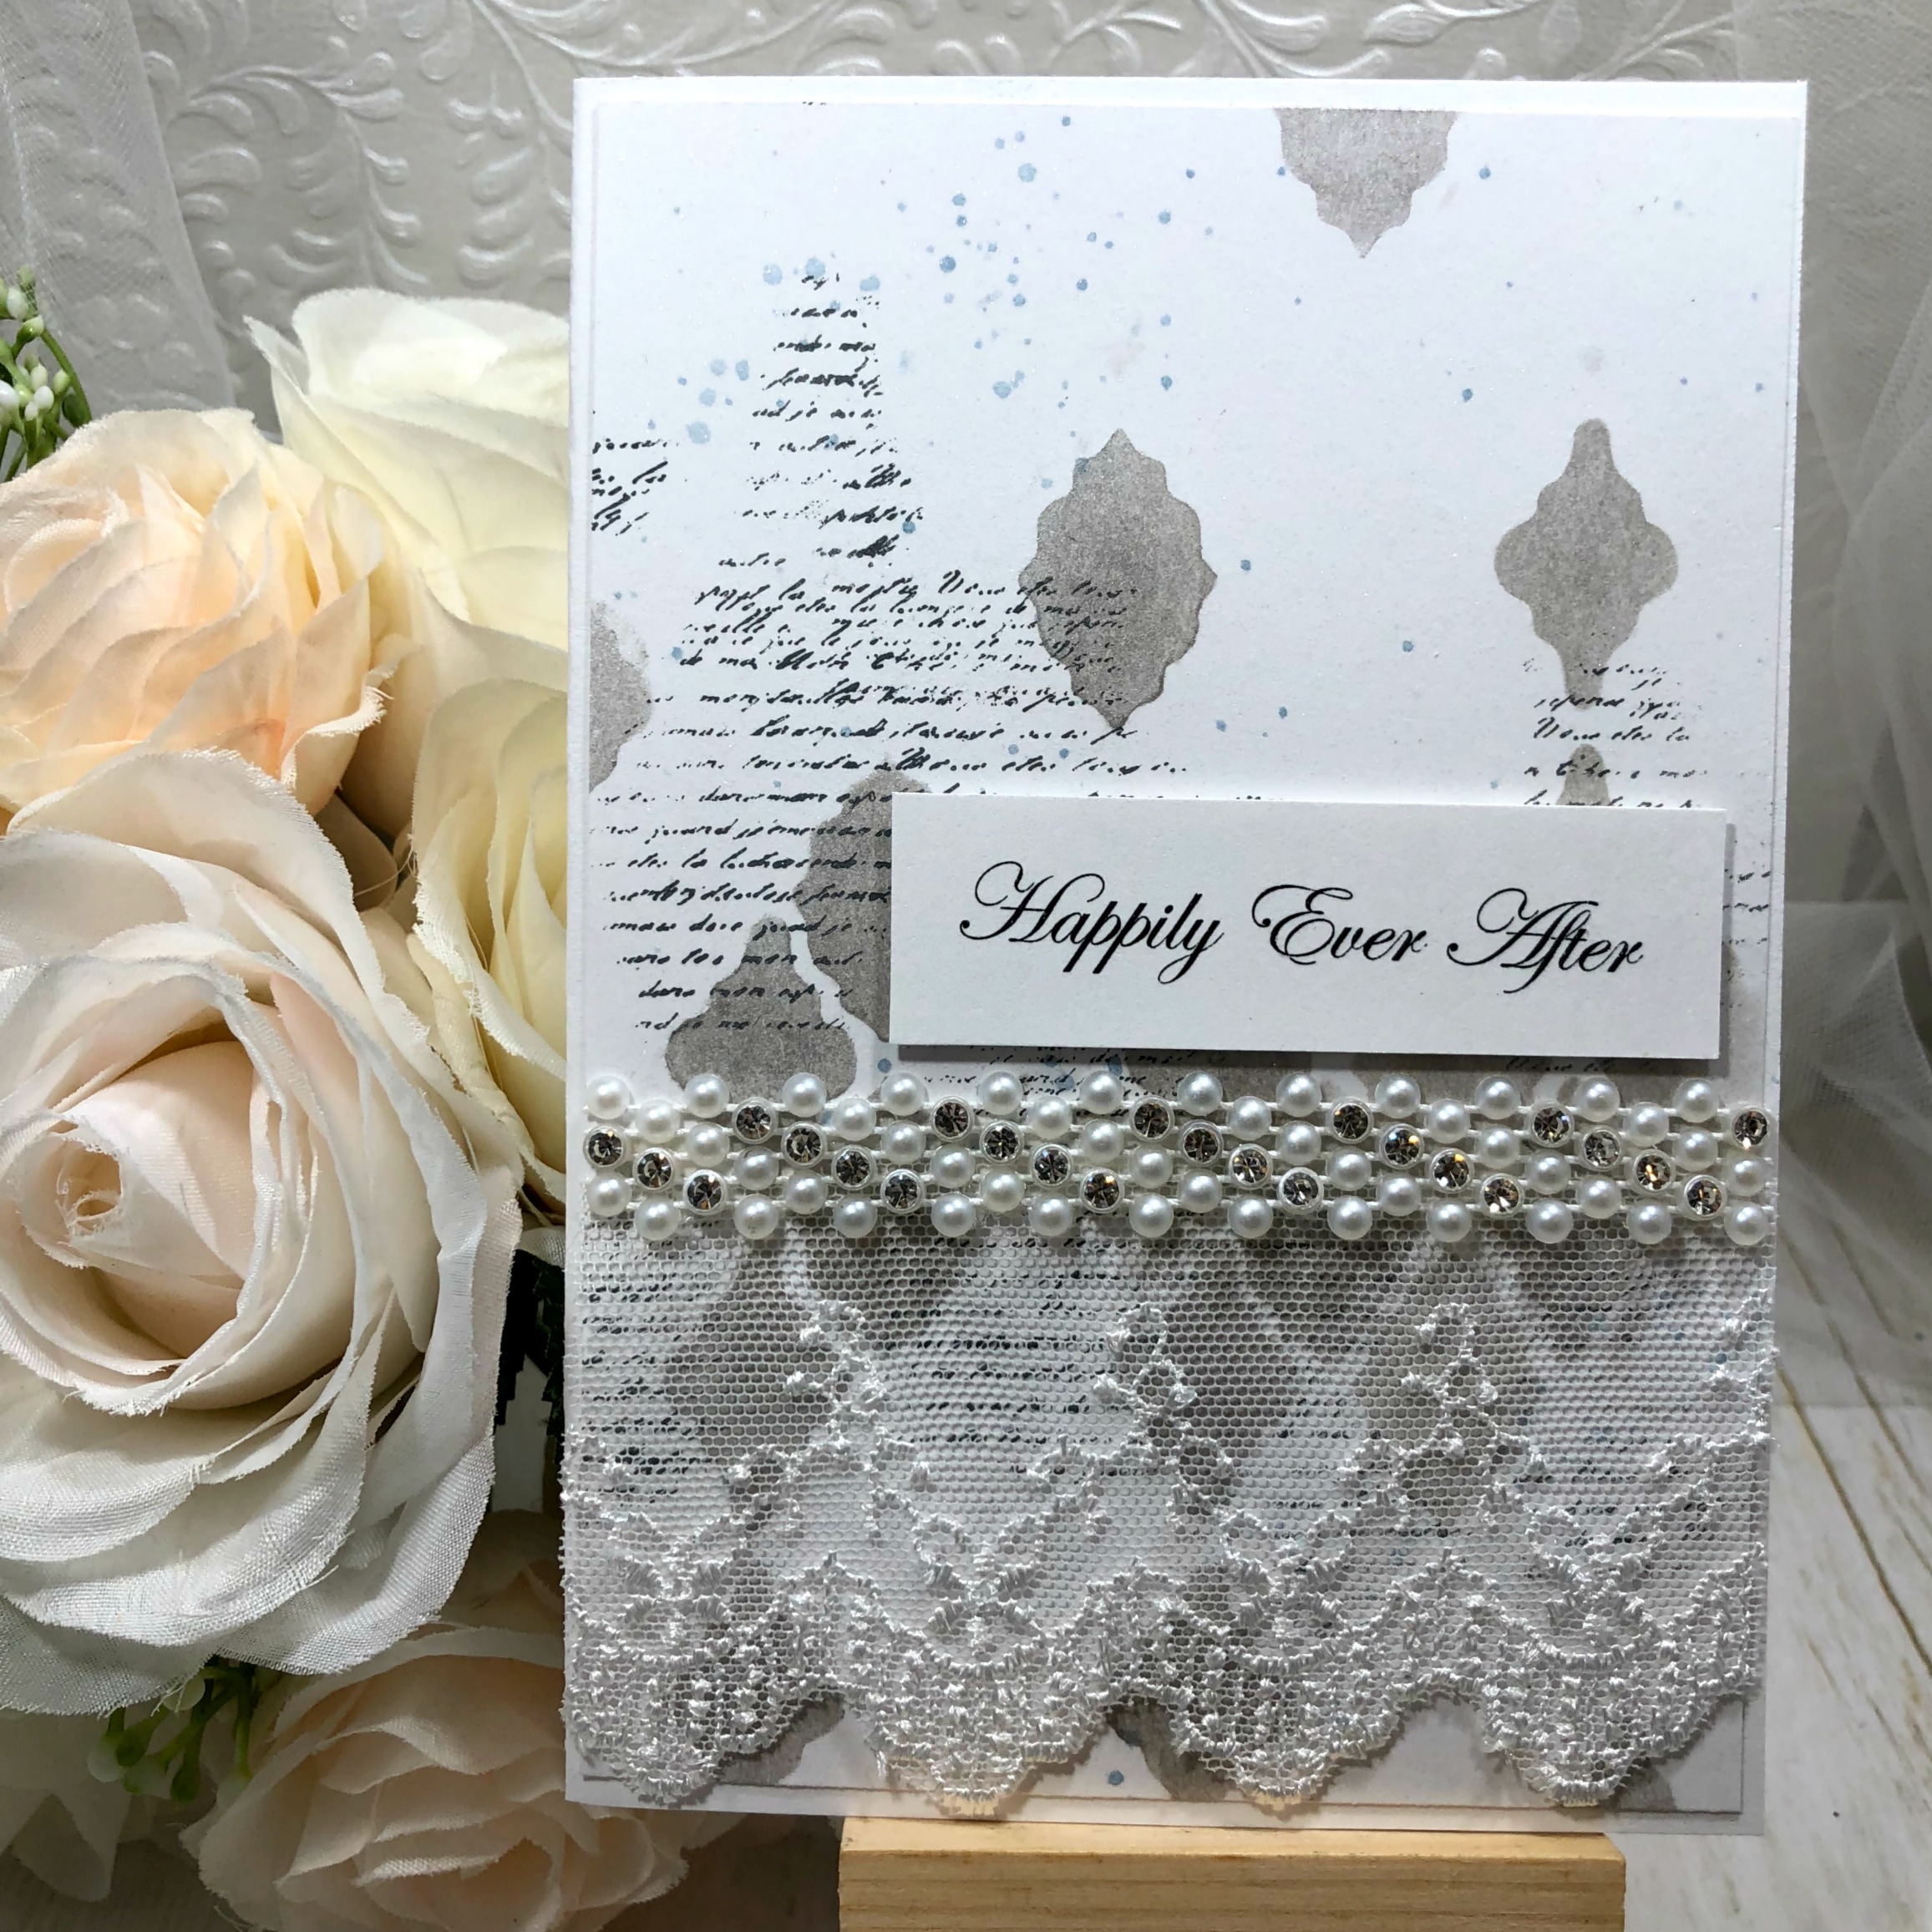 Handmade mixed media inspired wedding card with silver and white tones